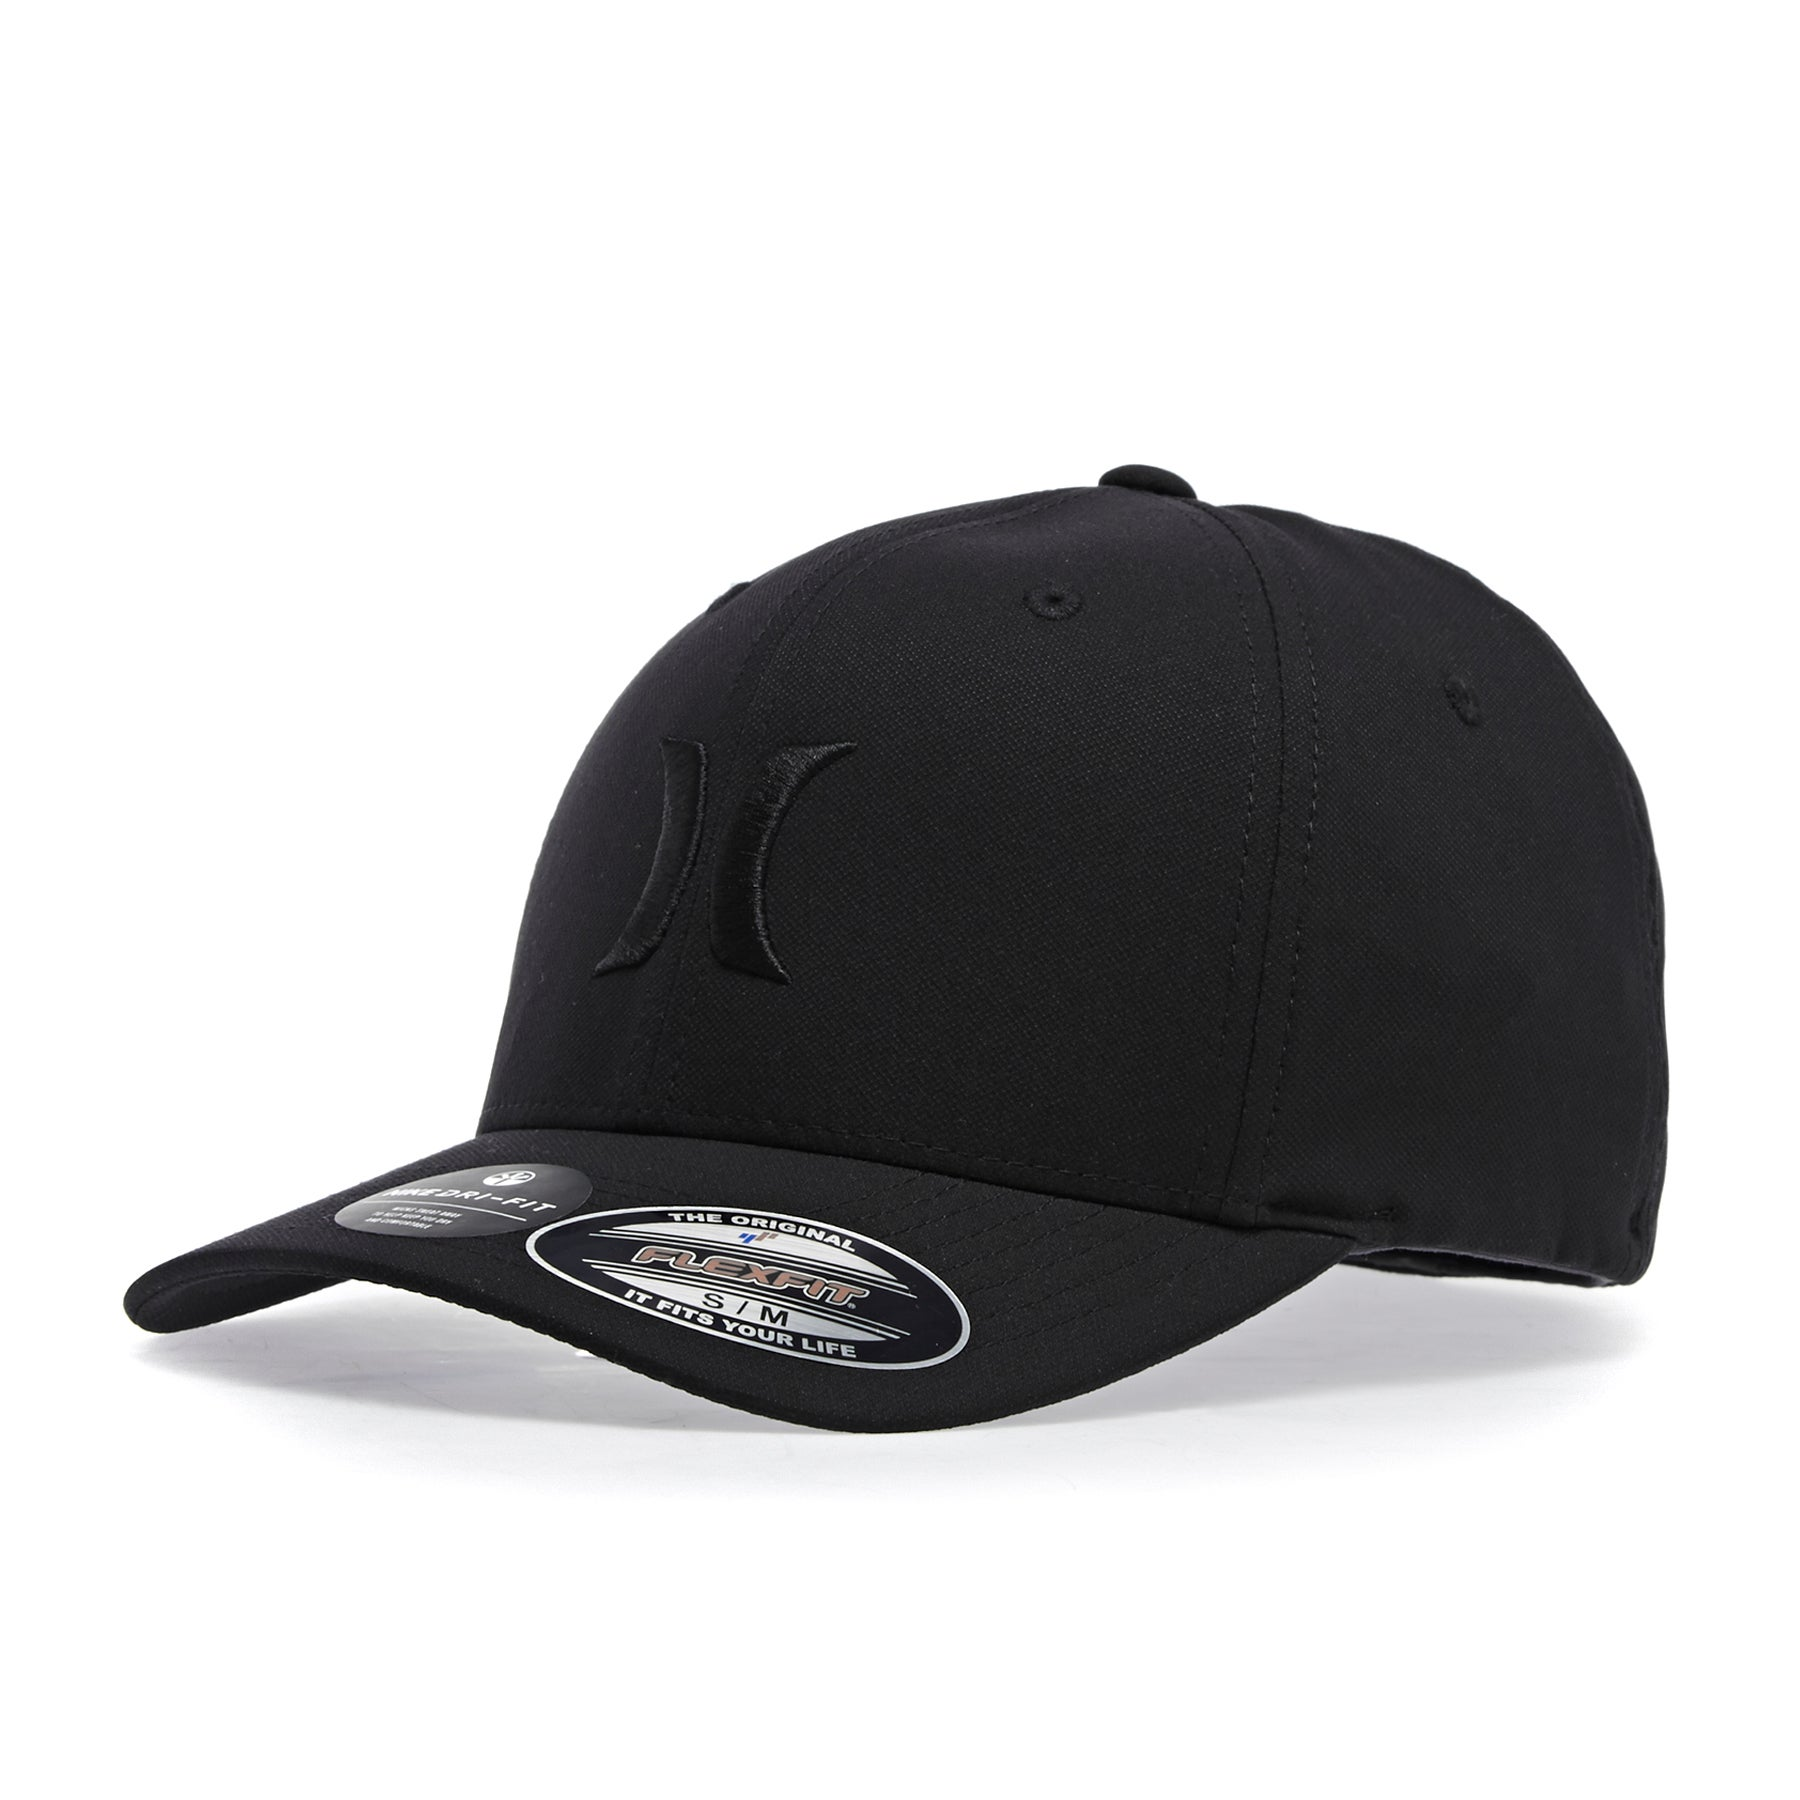 Casquette Hurley Dri-fit One and Only 2.0 - Black